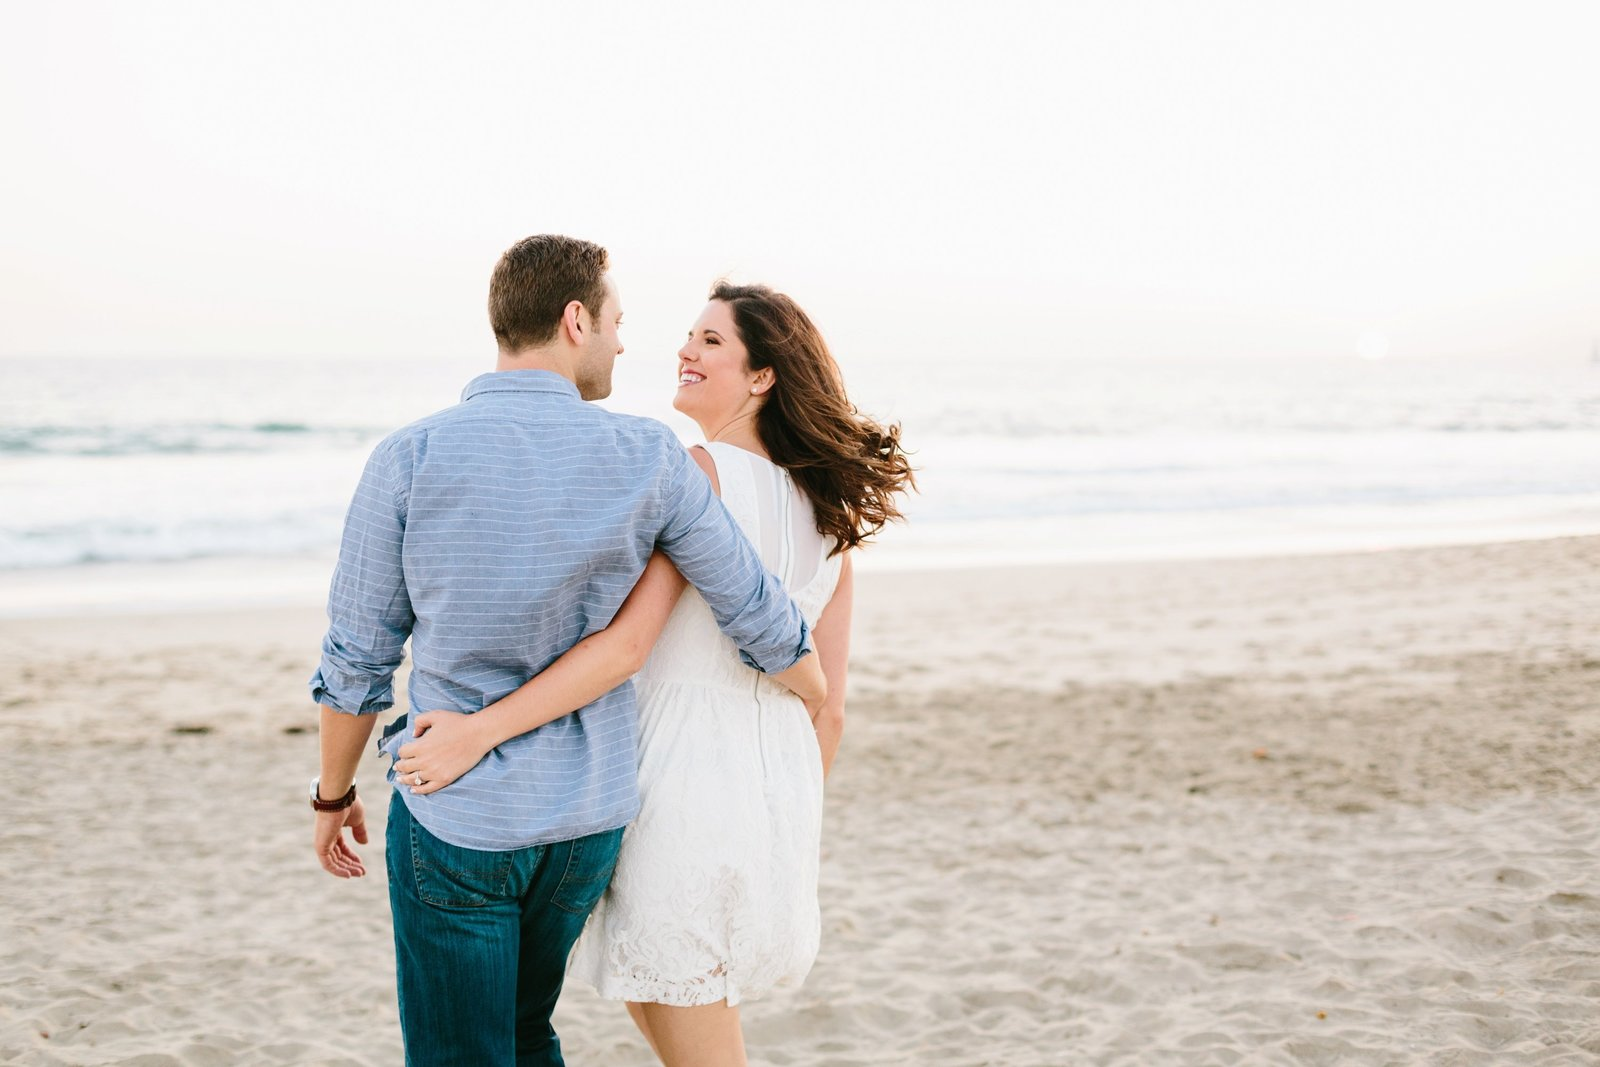 Engagement Photos-Jodee Debes Photography-147